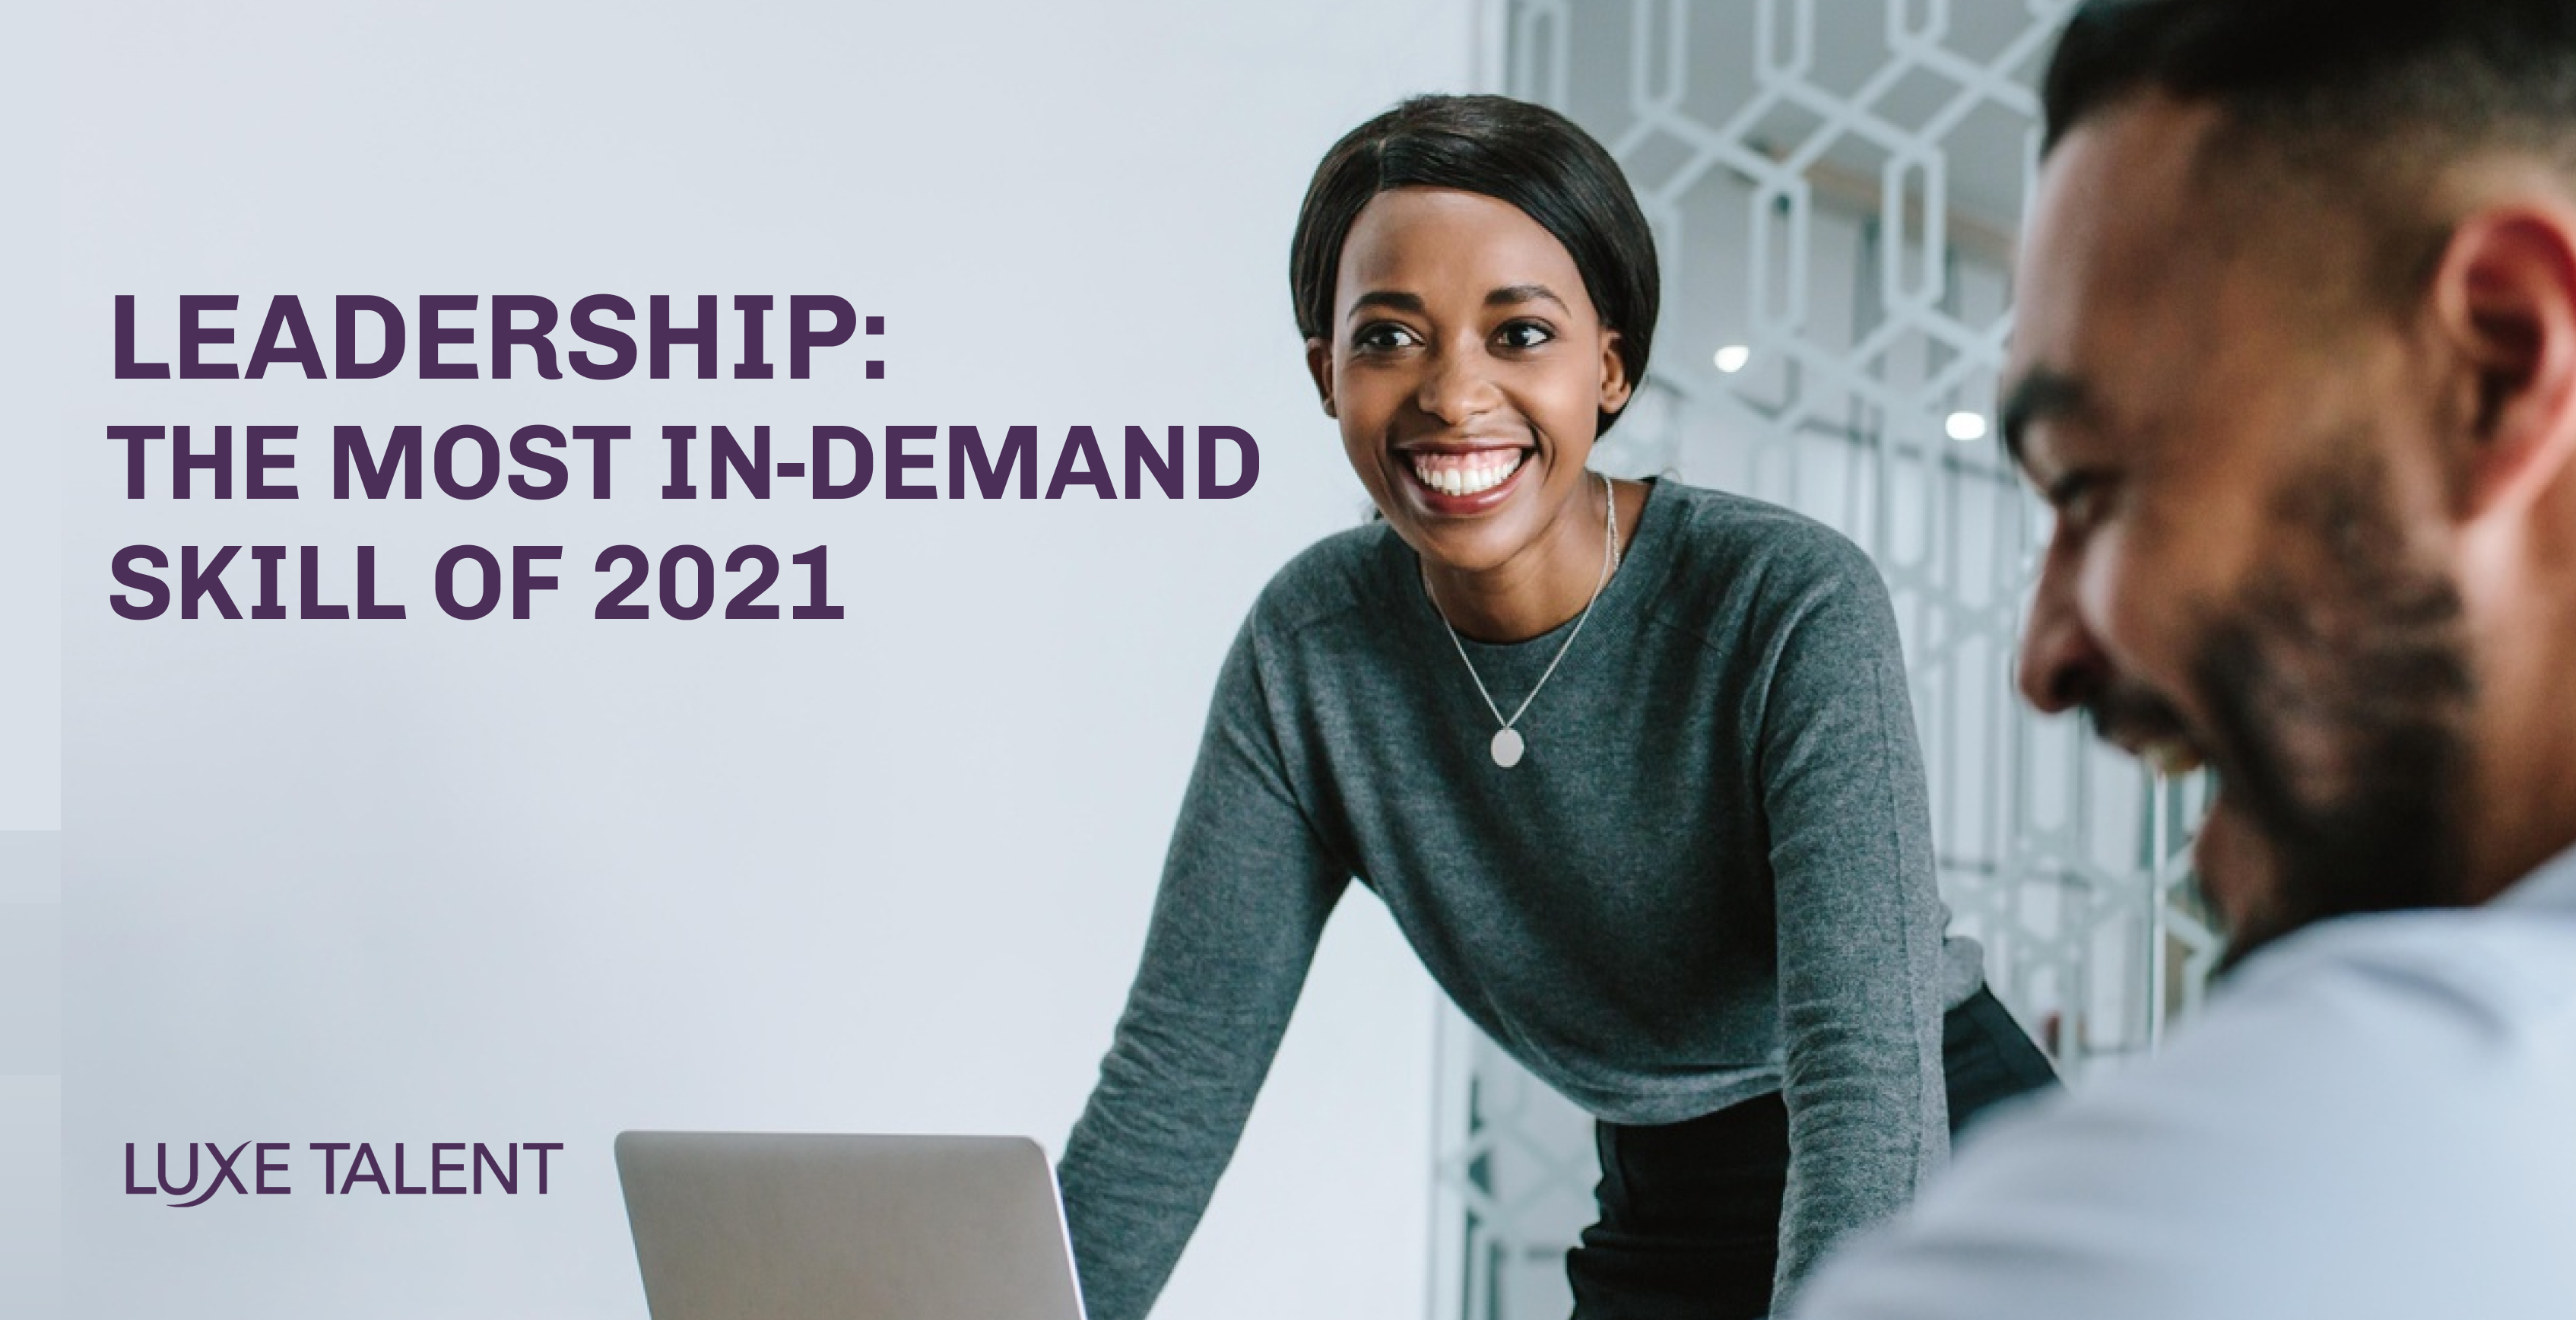 LEADERSHIP: THE MOST IN-DEMAND SKILL OF 2021 BY LUXE TALENT